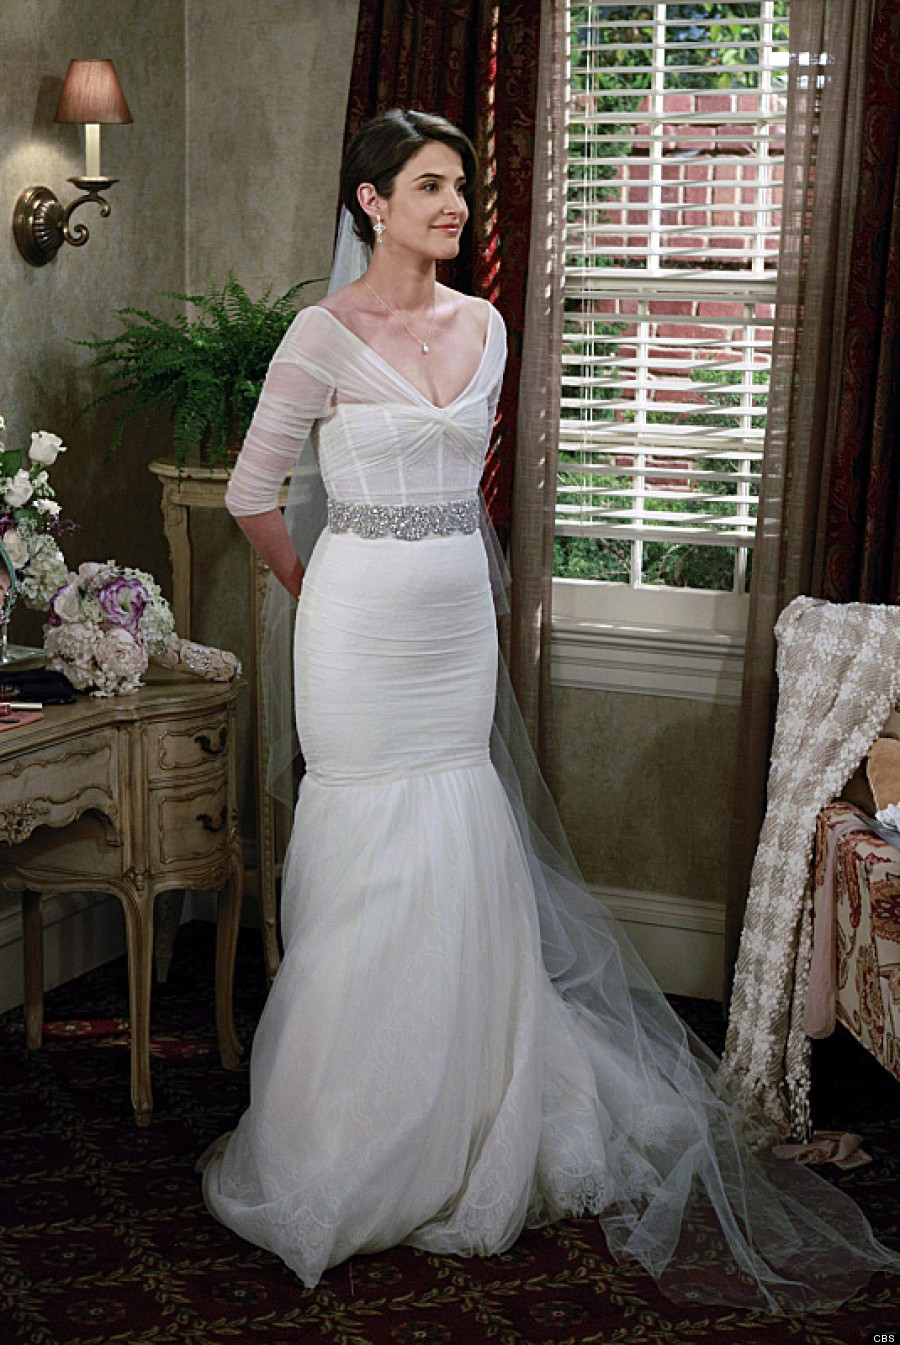 Iconic Wedding Dresses From Tv Shows The Yes Girls